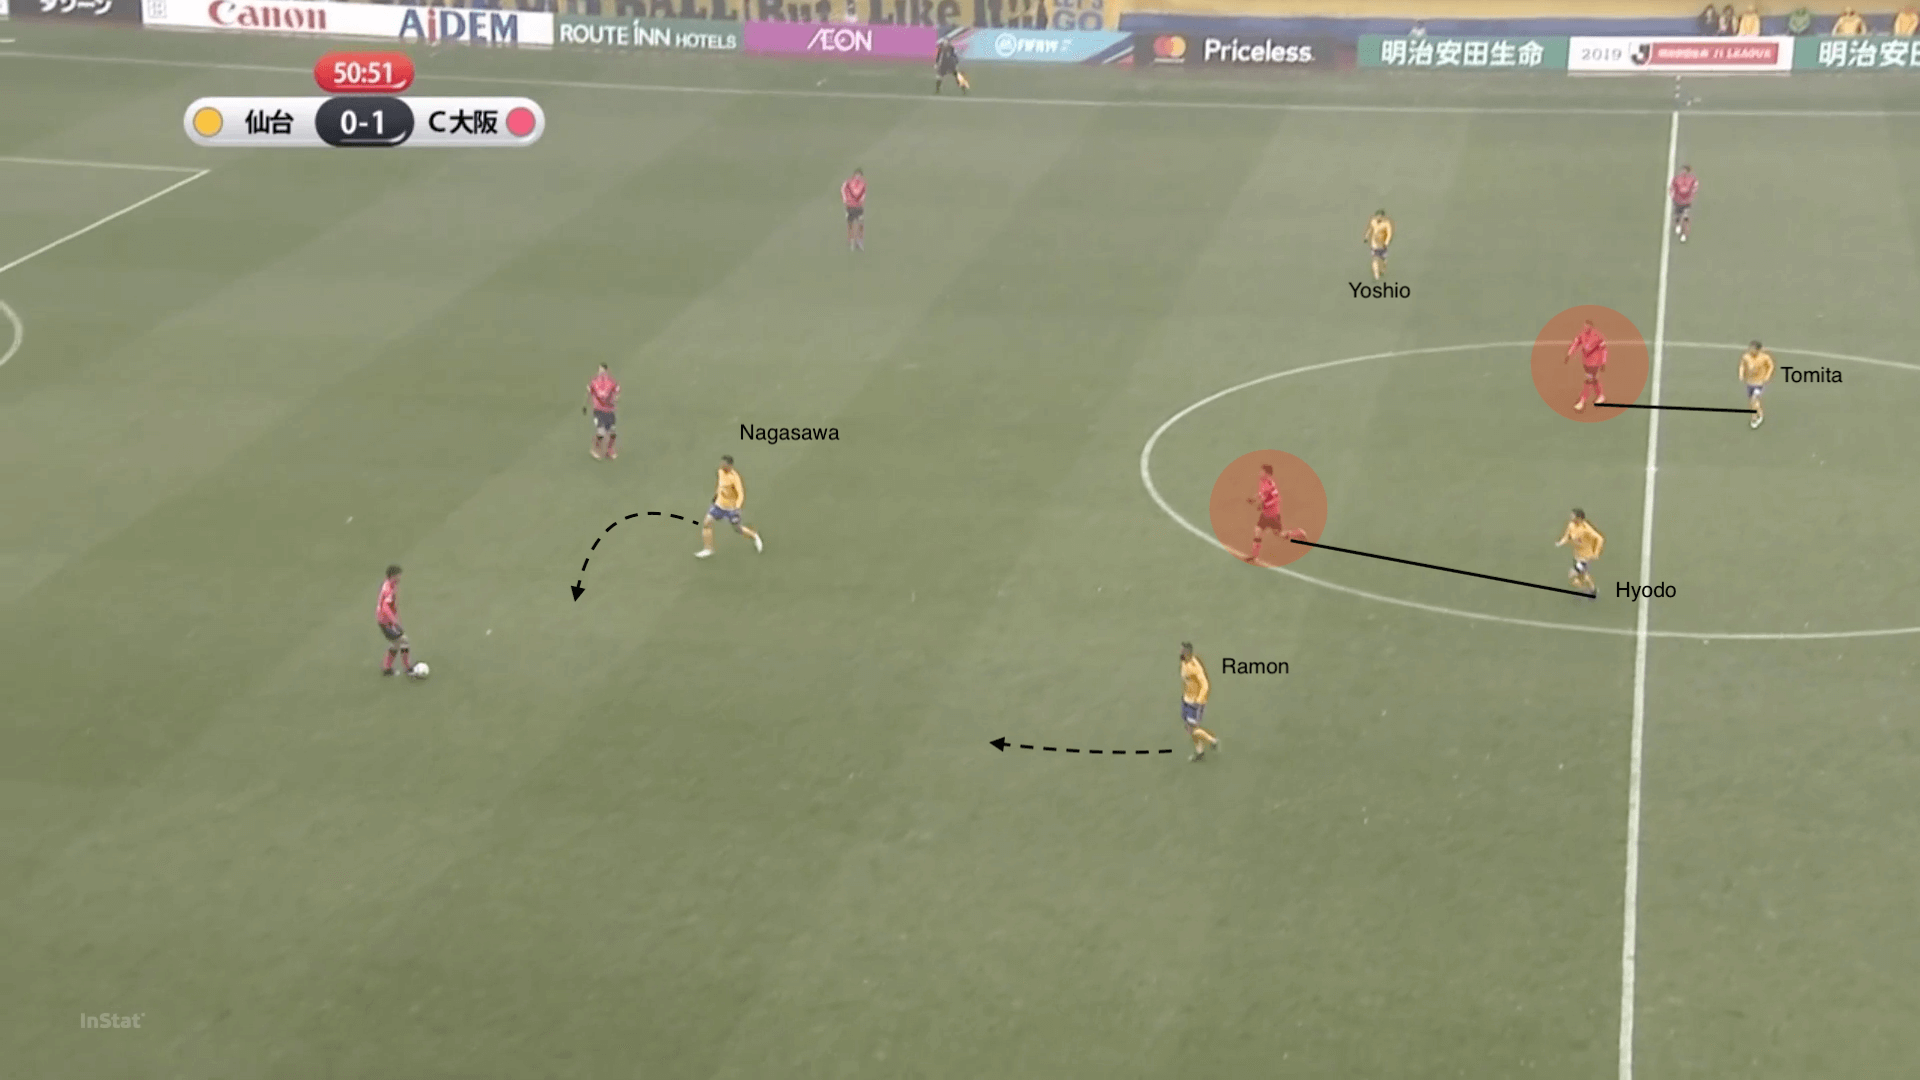 J1 League 2019: Vegalta Sendai vs Cerezo Osaka - tactical analysis tactics